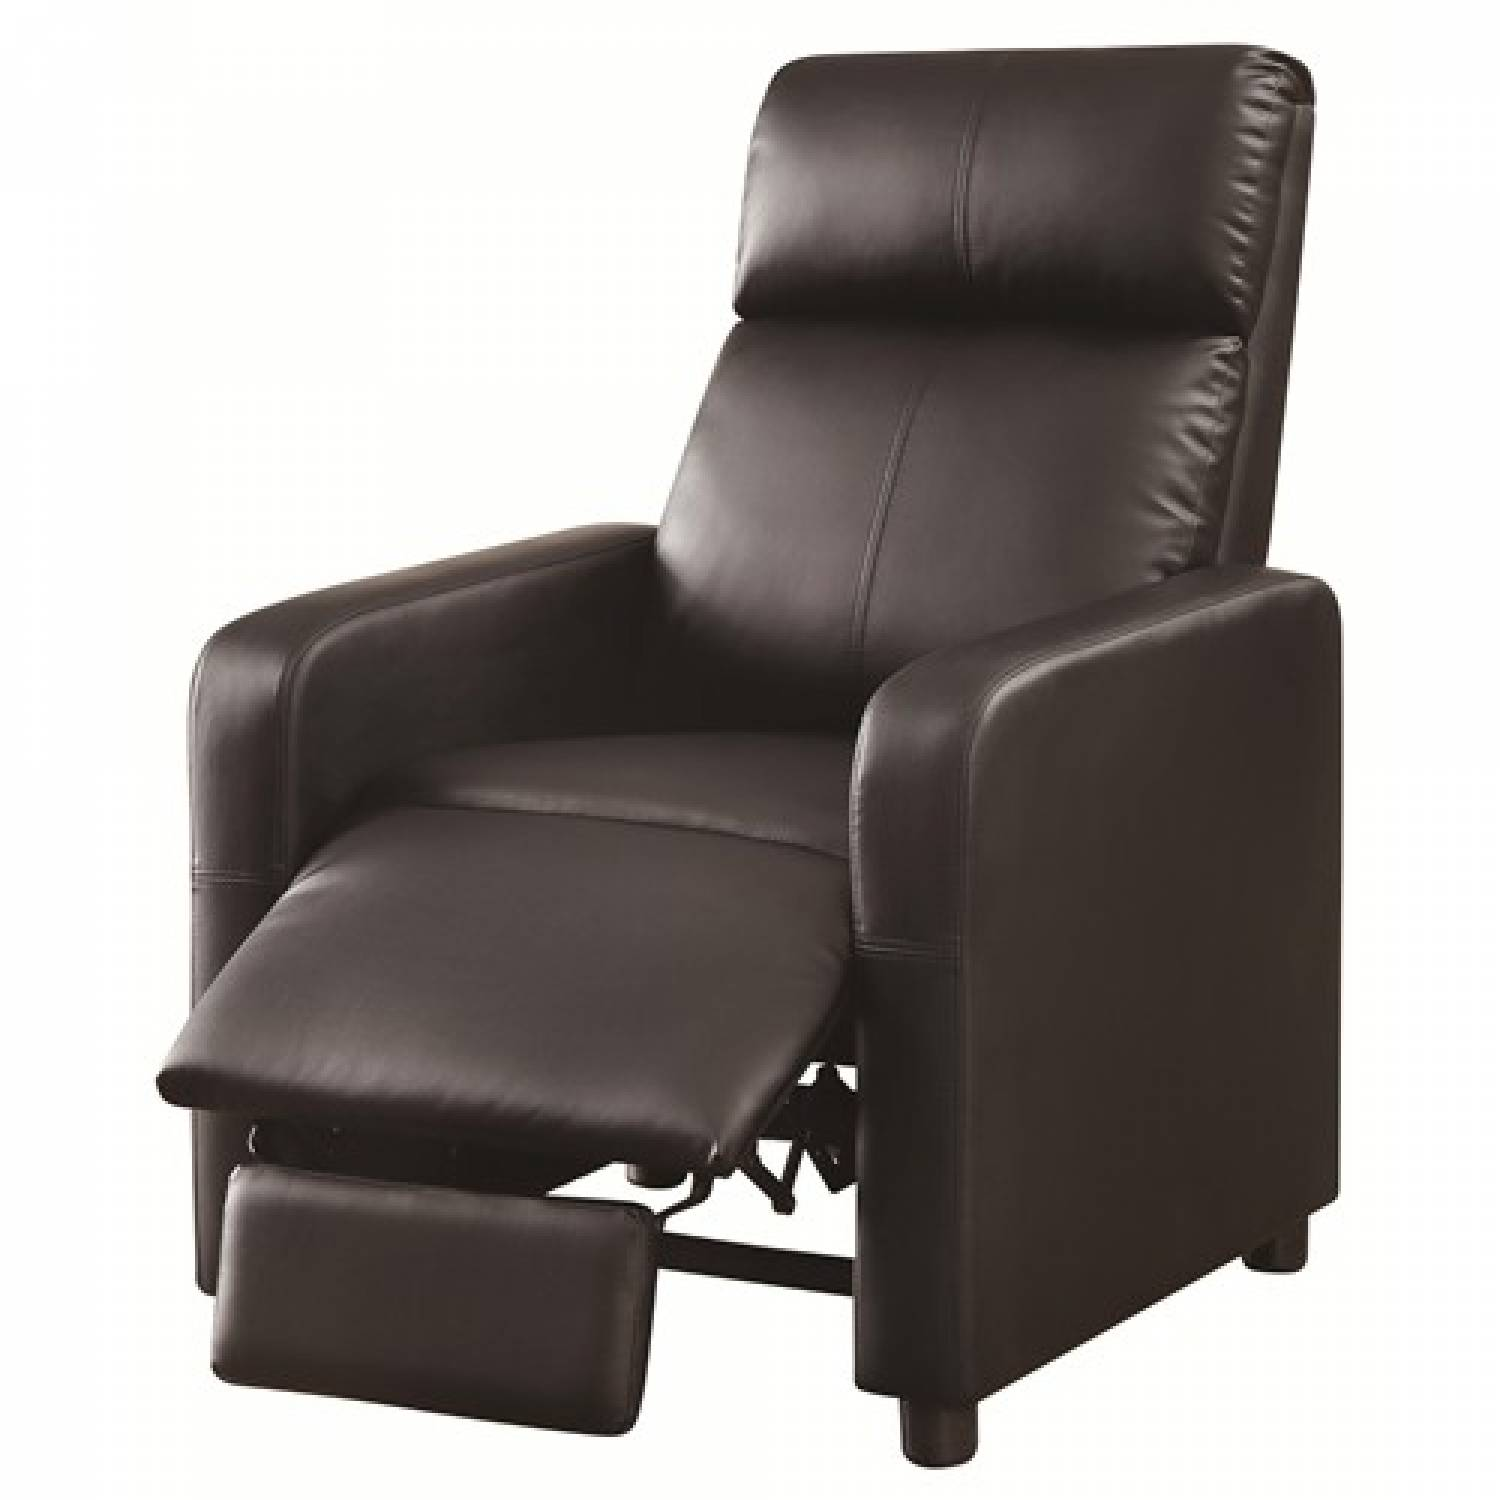 Recliners Theater Seating Push Back Recliner With